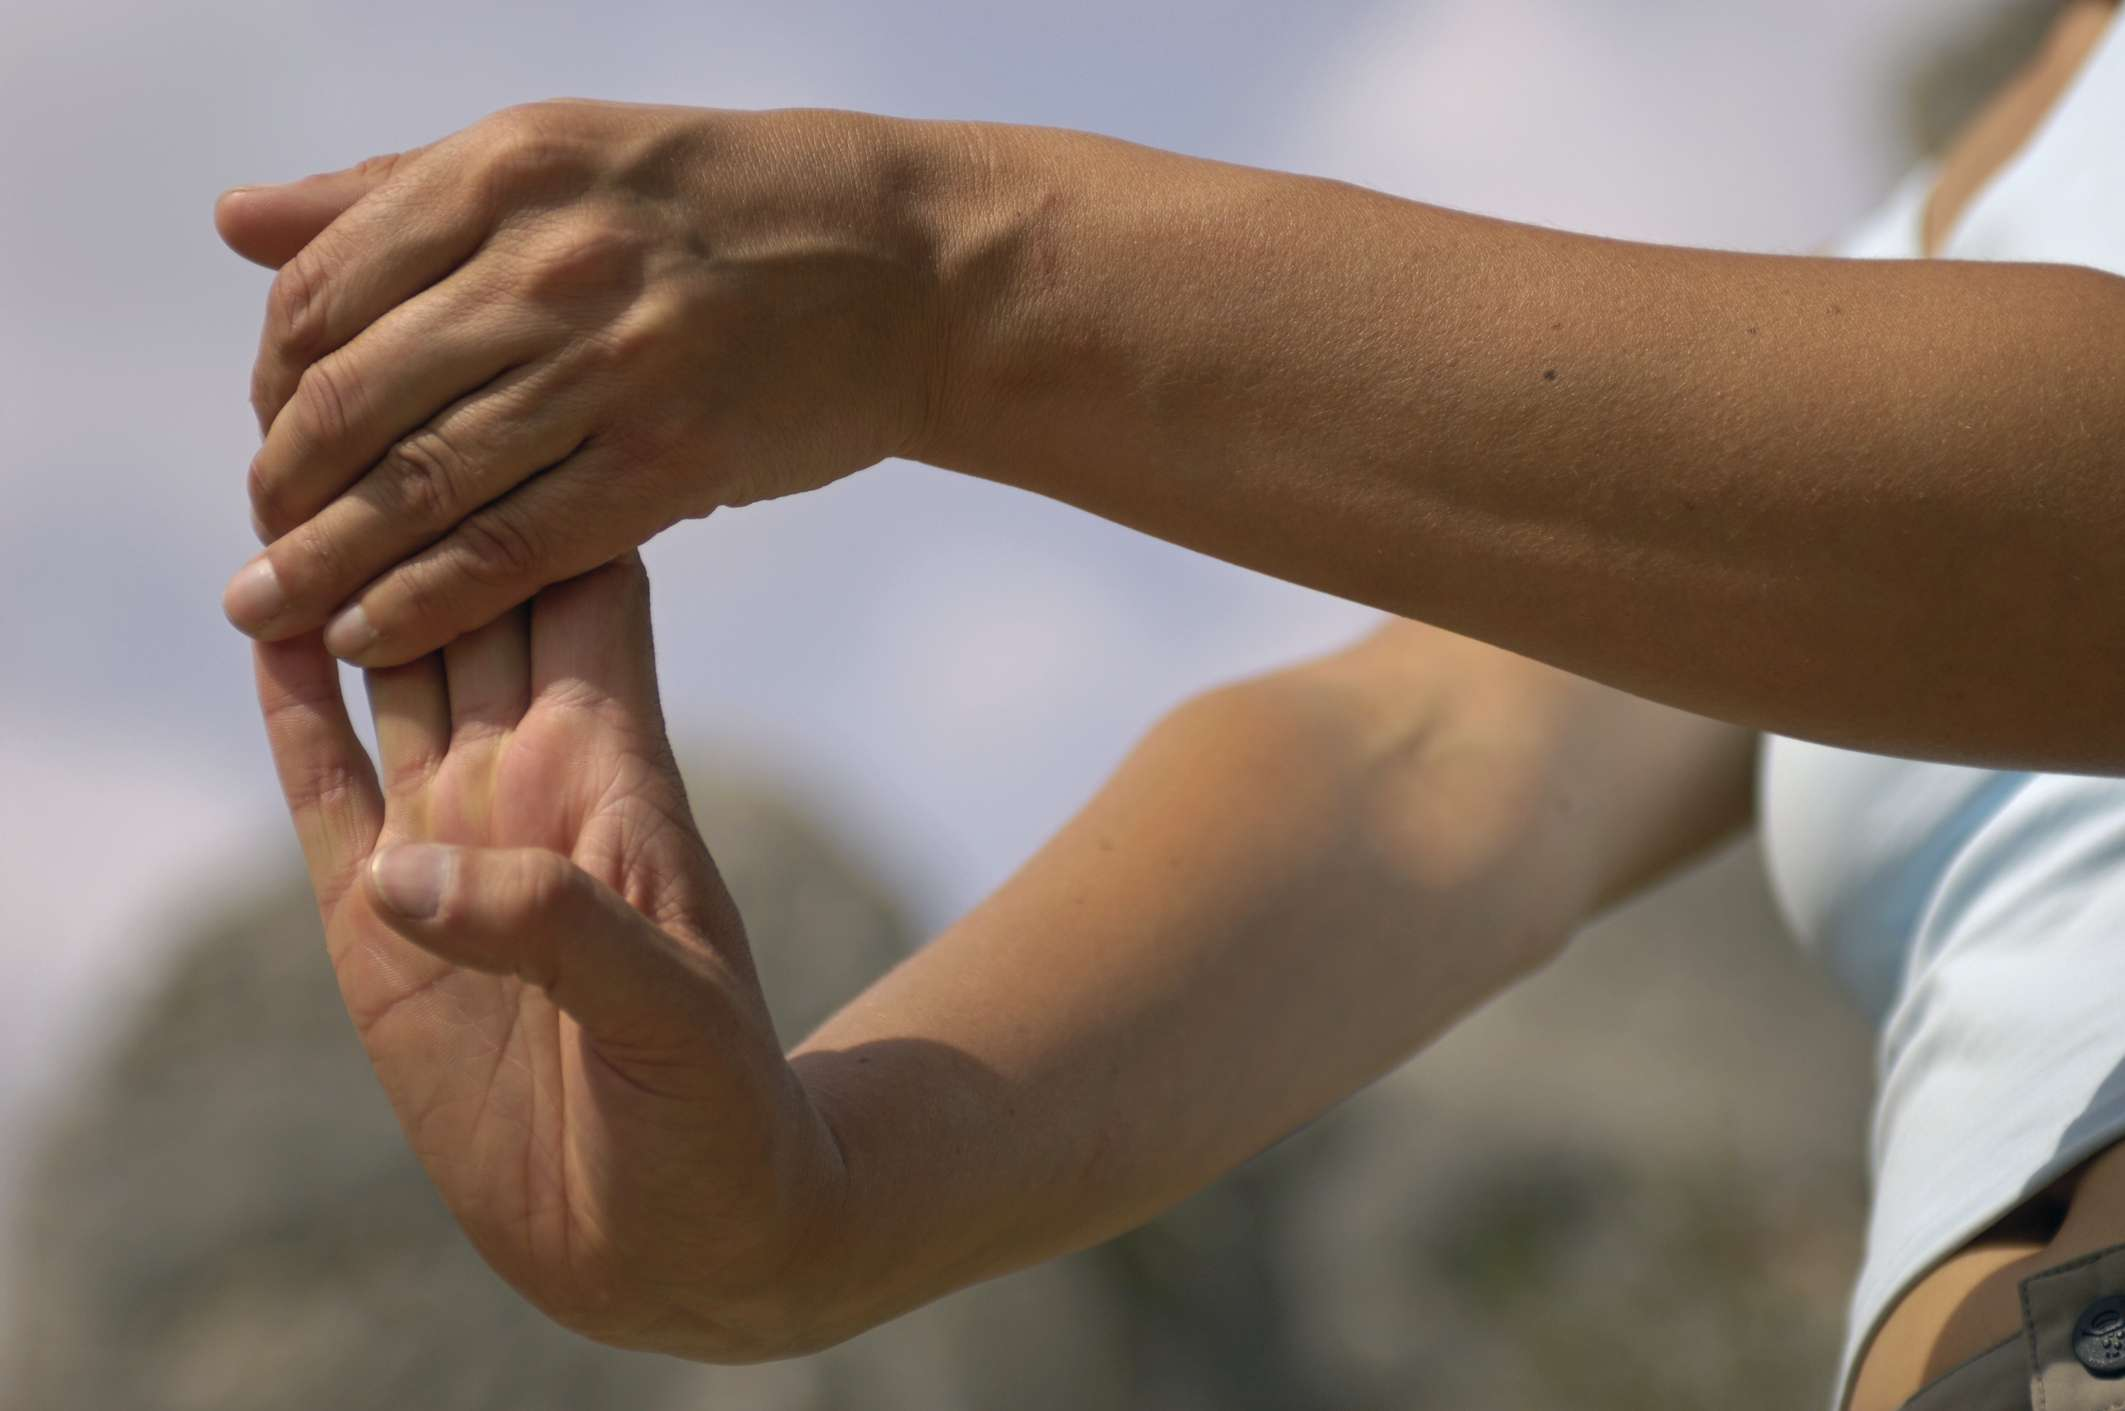 Person stretching fingers